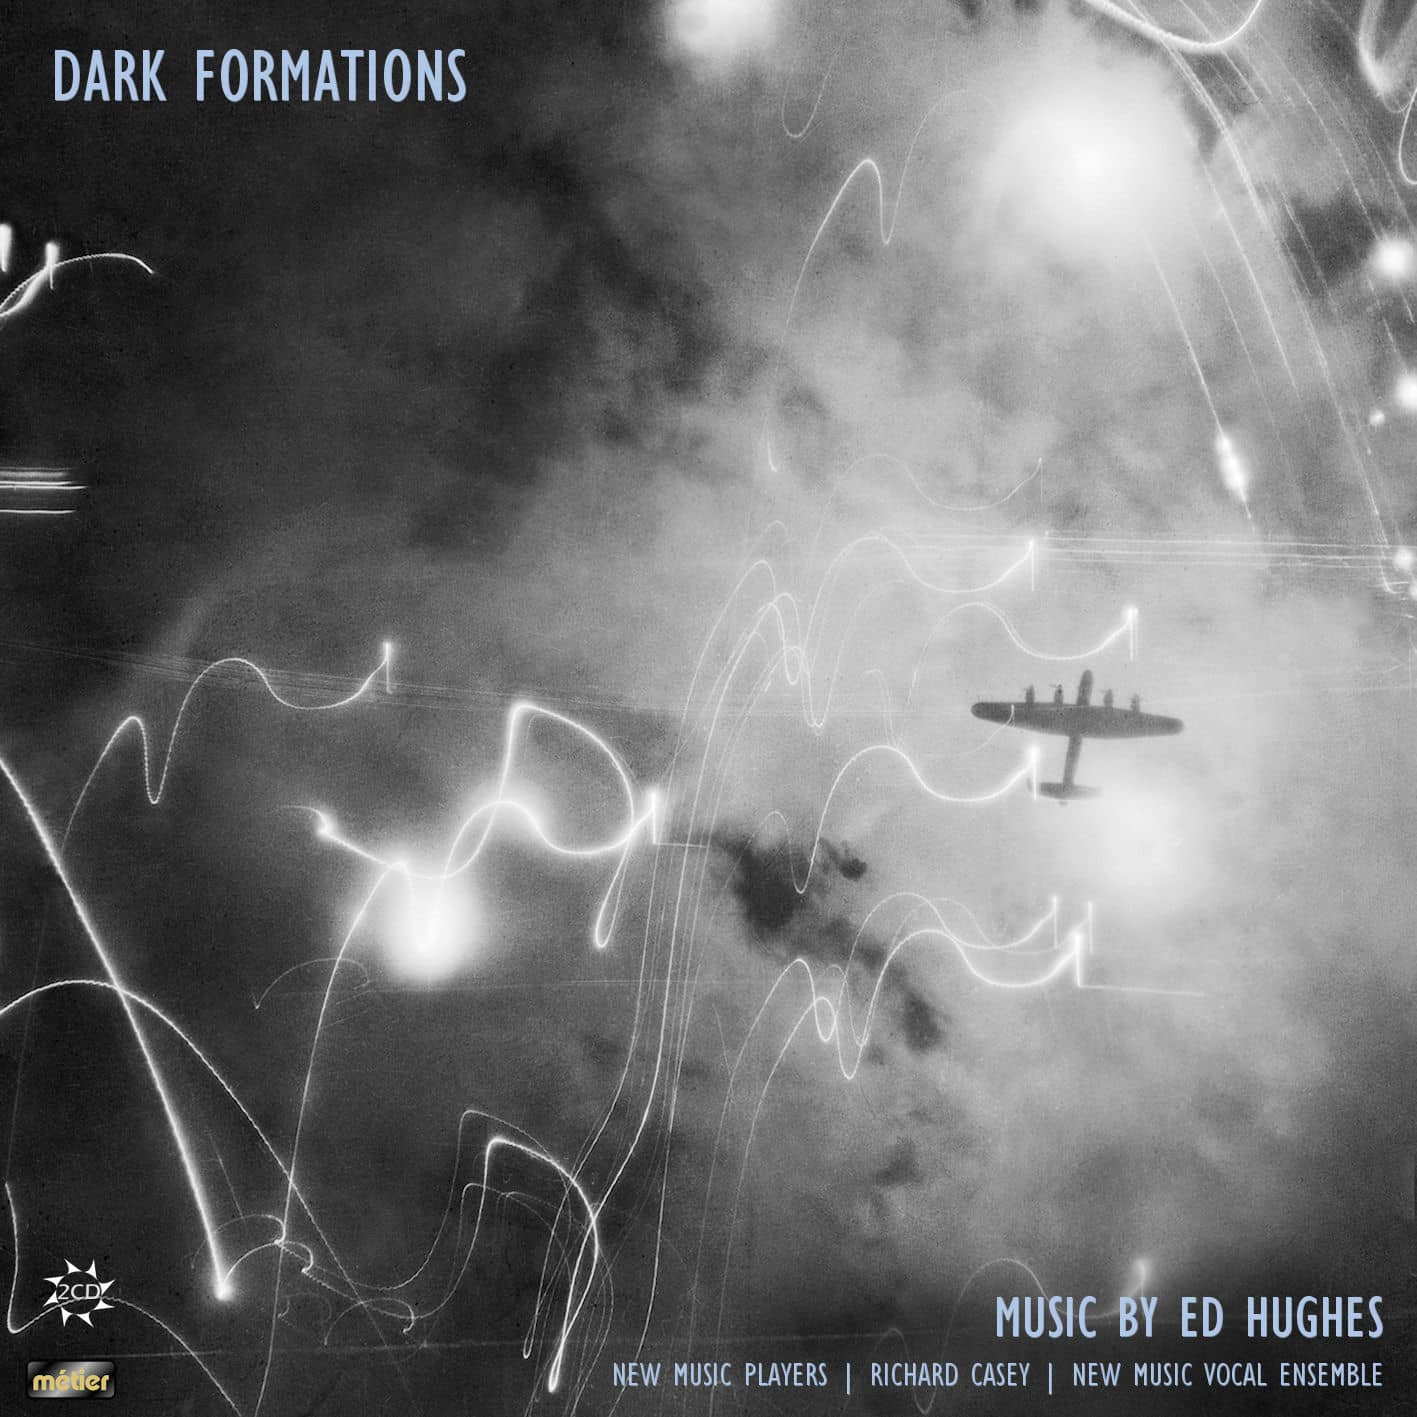 Dark Formations - Music by Ed Hughes